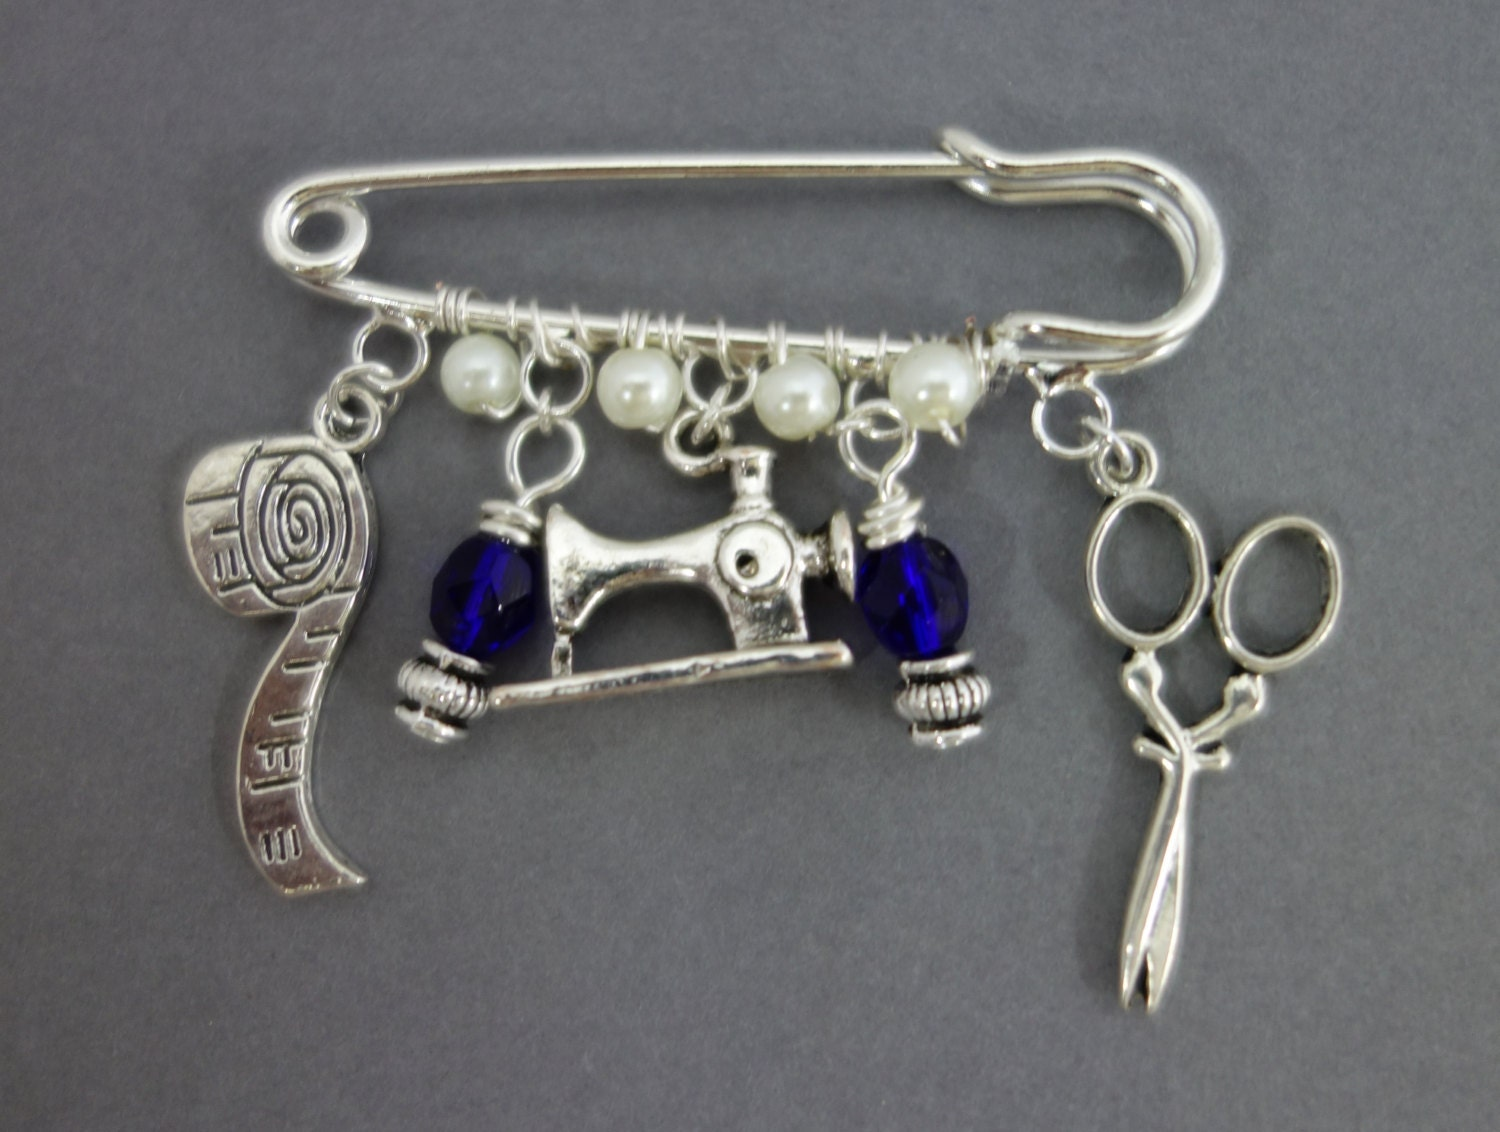 Sewing Charm brooch sewing enthusiasts brooch charm brooch Christmas stocking filler present